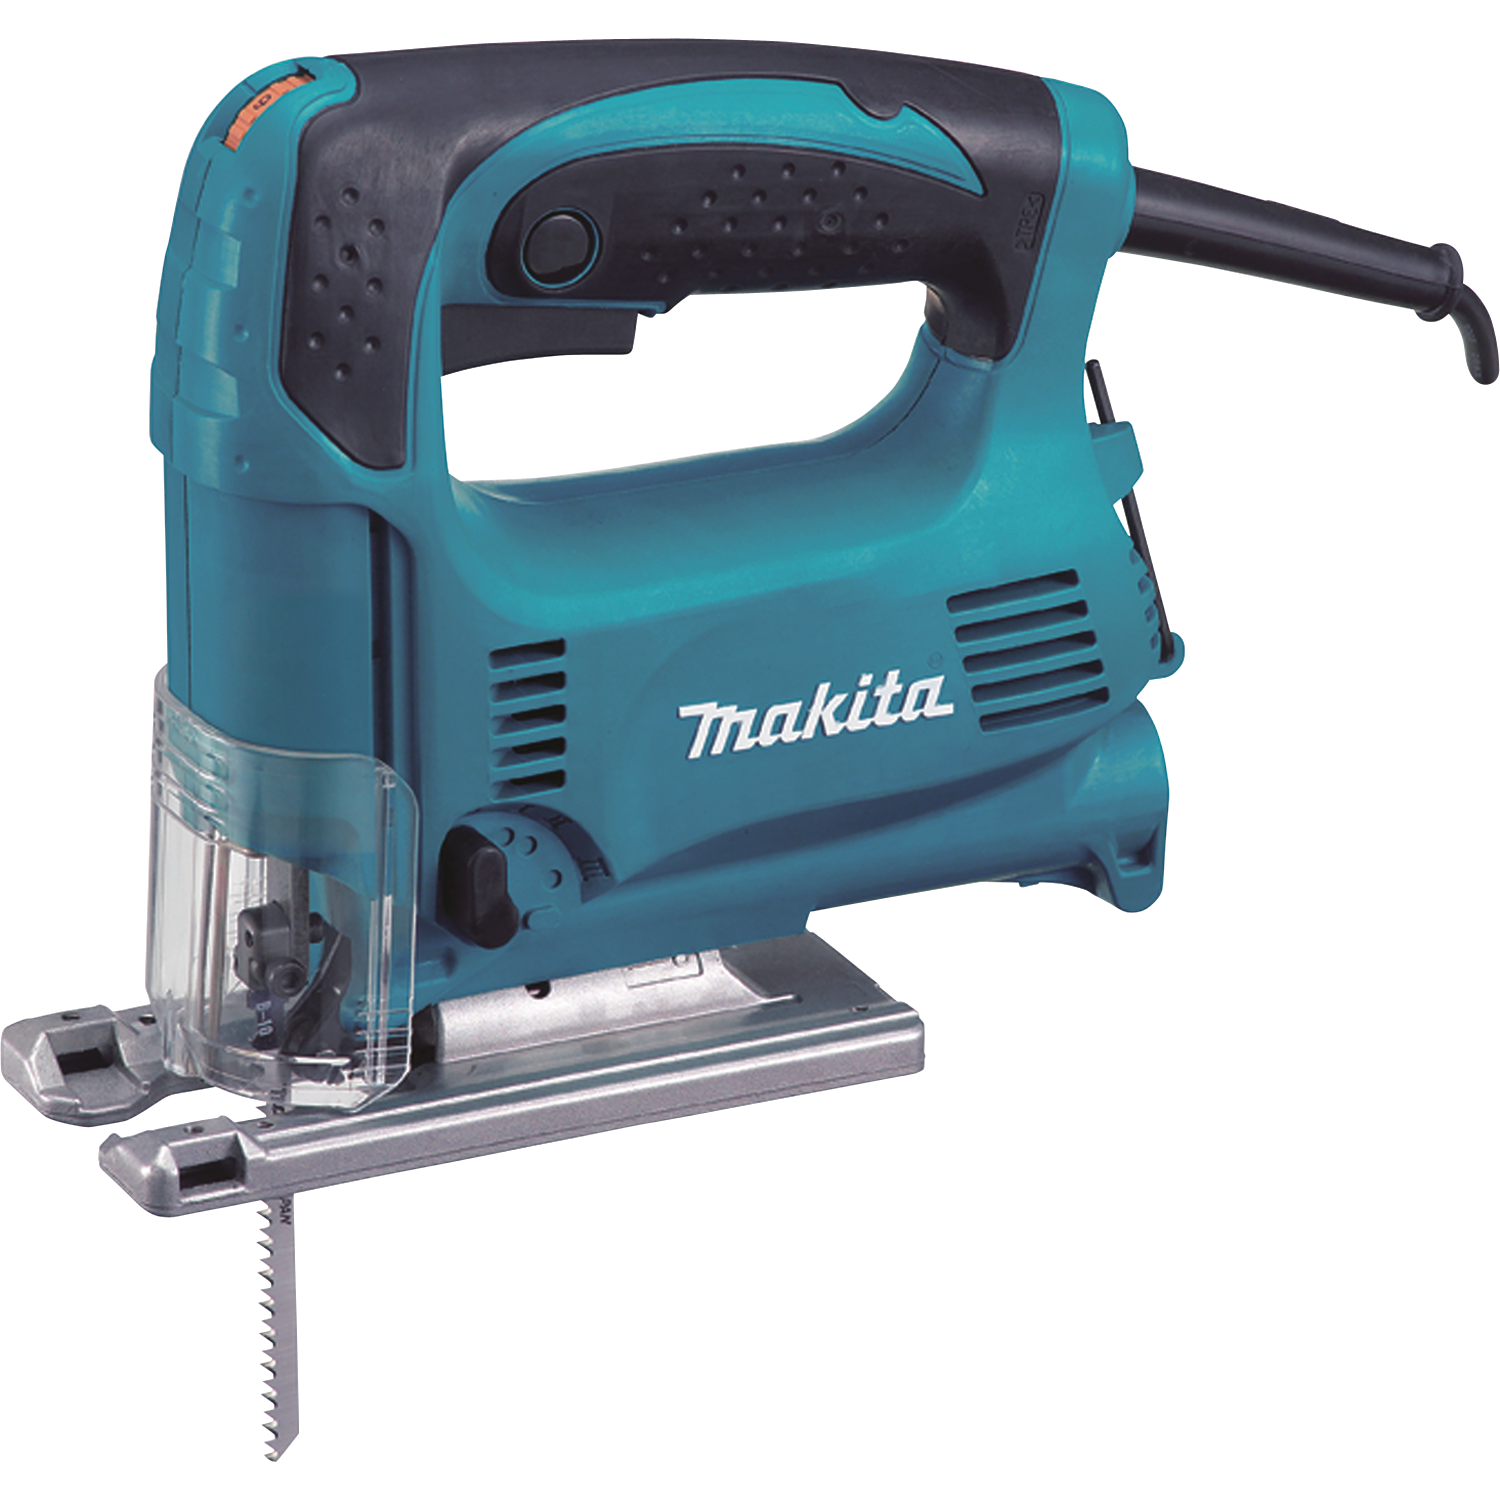 makita usa product details 4329k rh makitatools com User Guide Icon Example User Guide